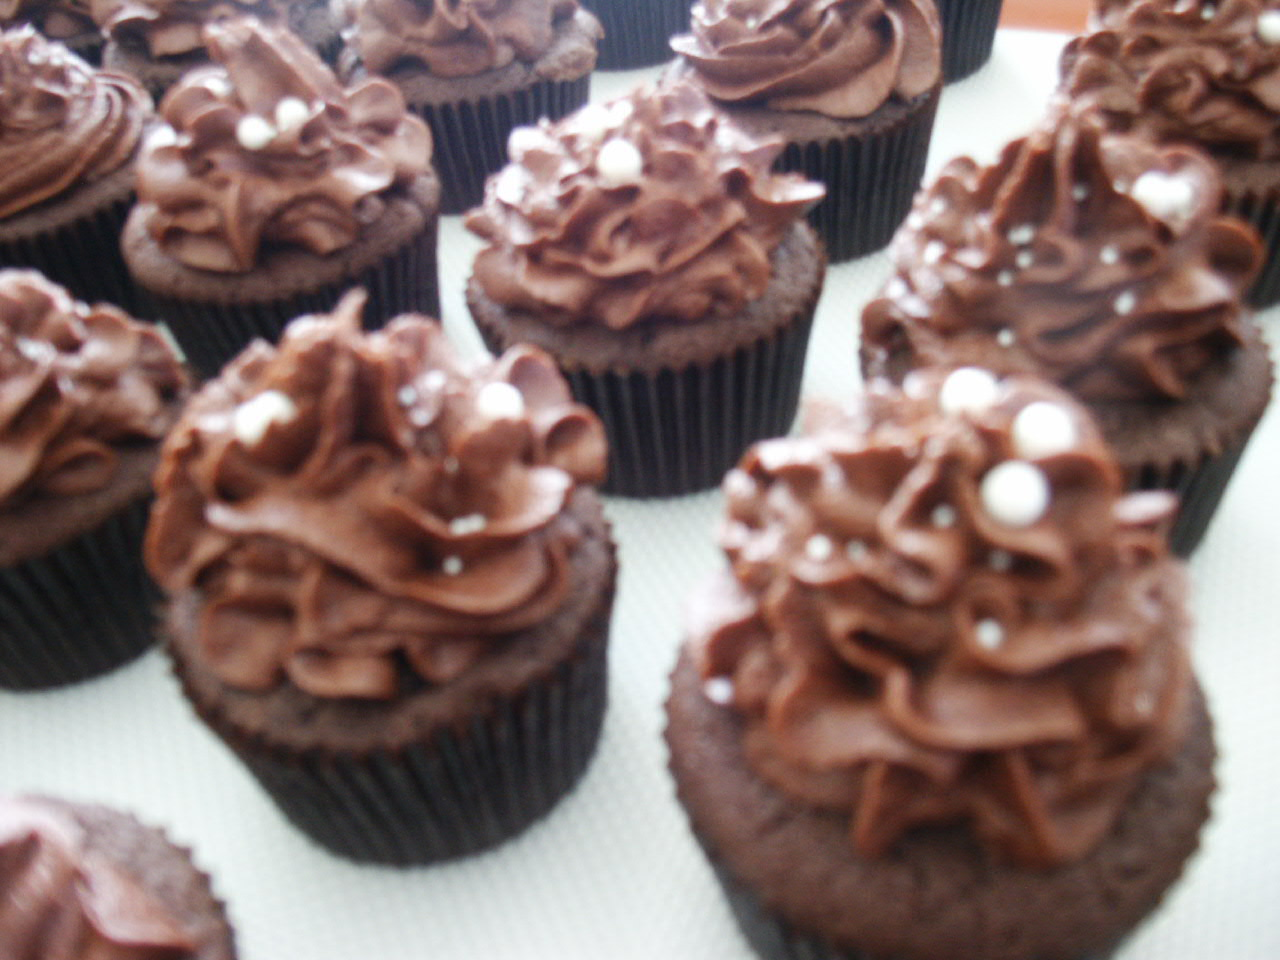 ... : Cocoa-Buttermilk Cupcakes with Chocolate Malt Buttercream Frosting